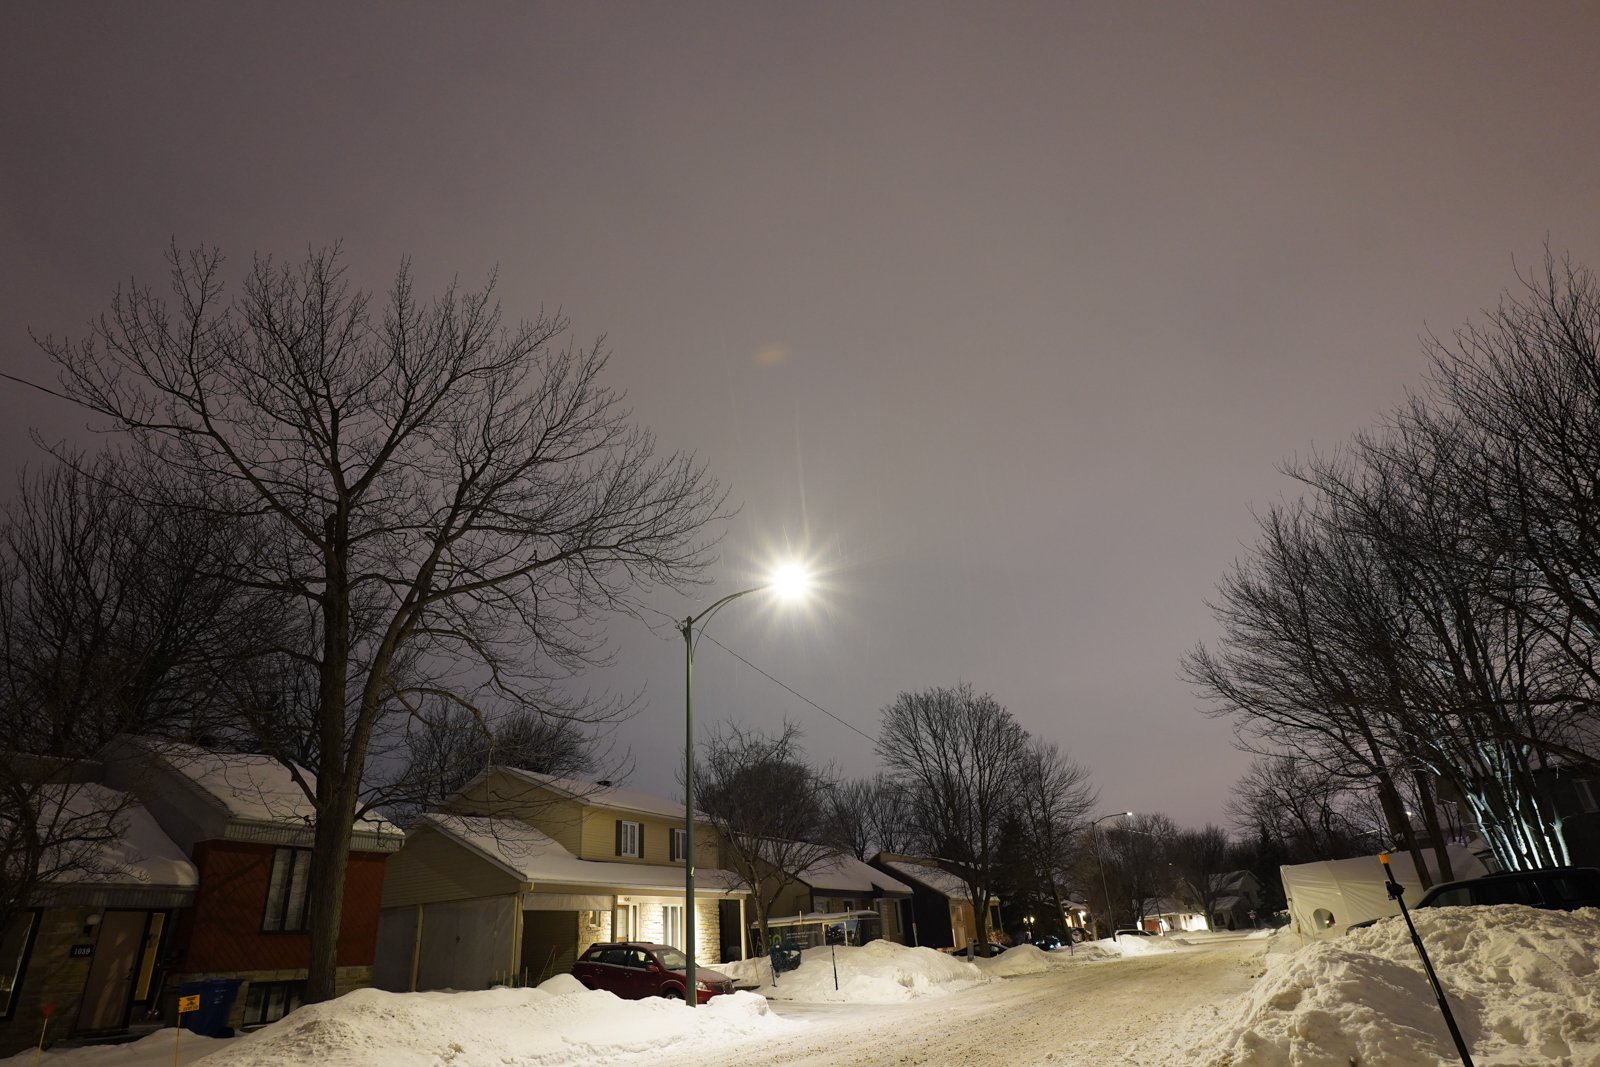 Tamron 20mm F2.8 Flare and Ghosting